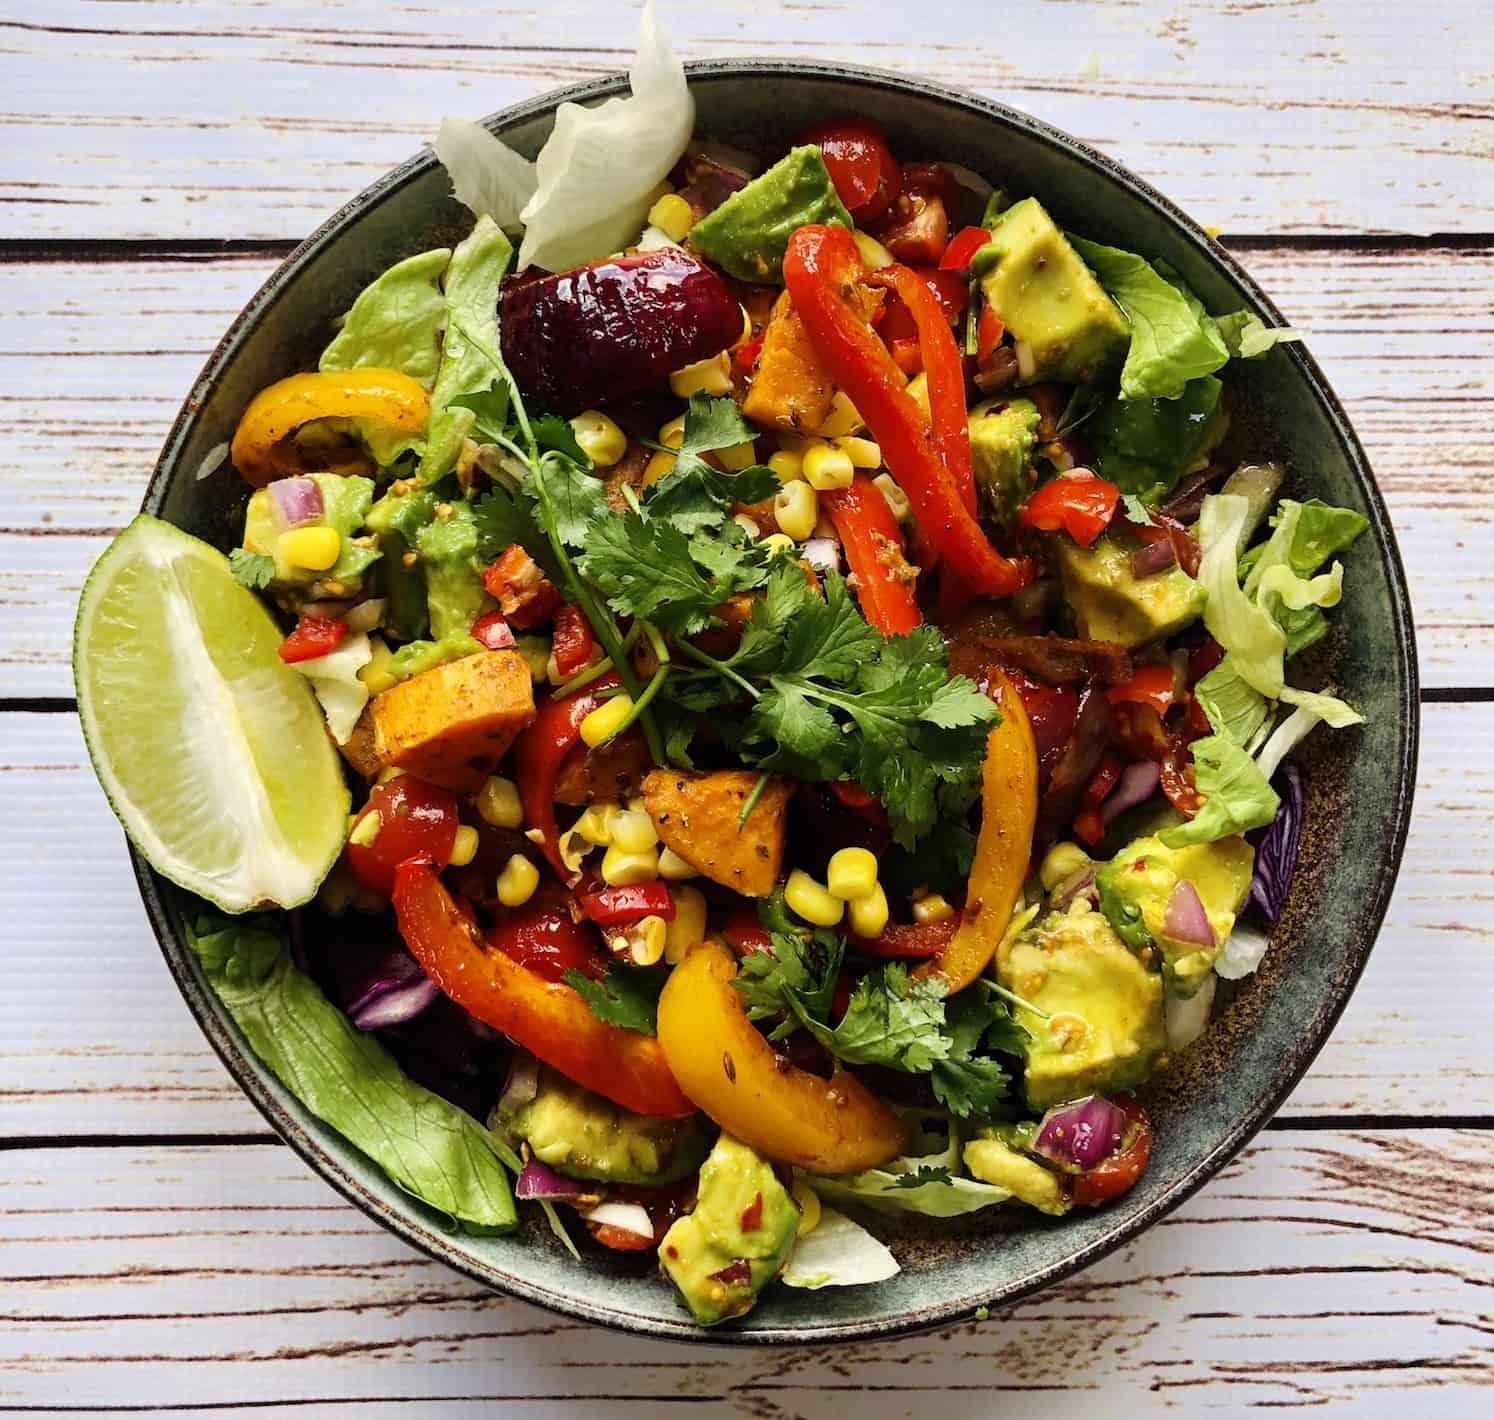 Vegan Santa Fe Salad Recipe